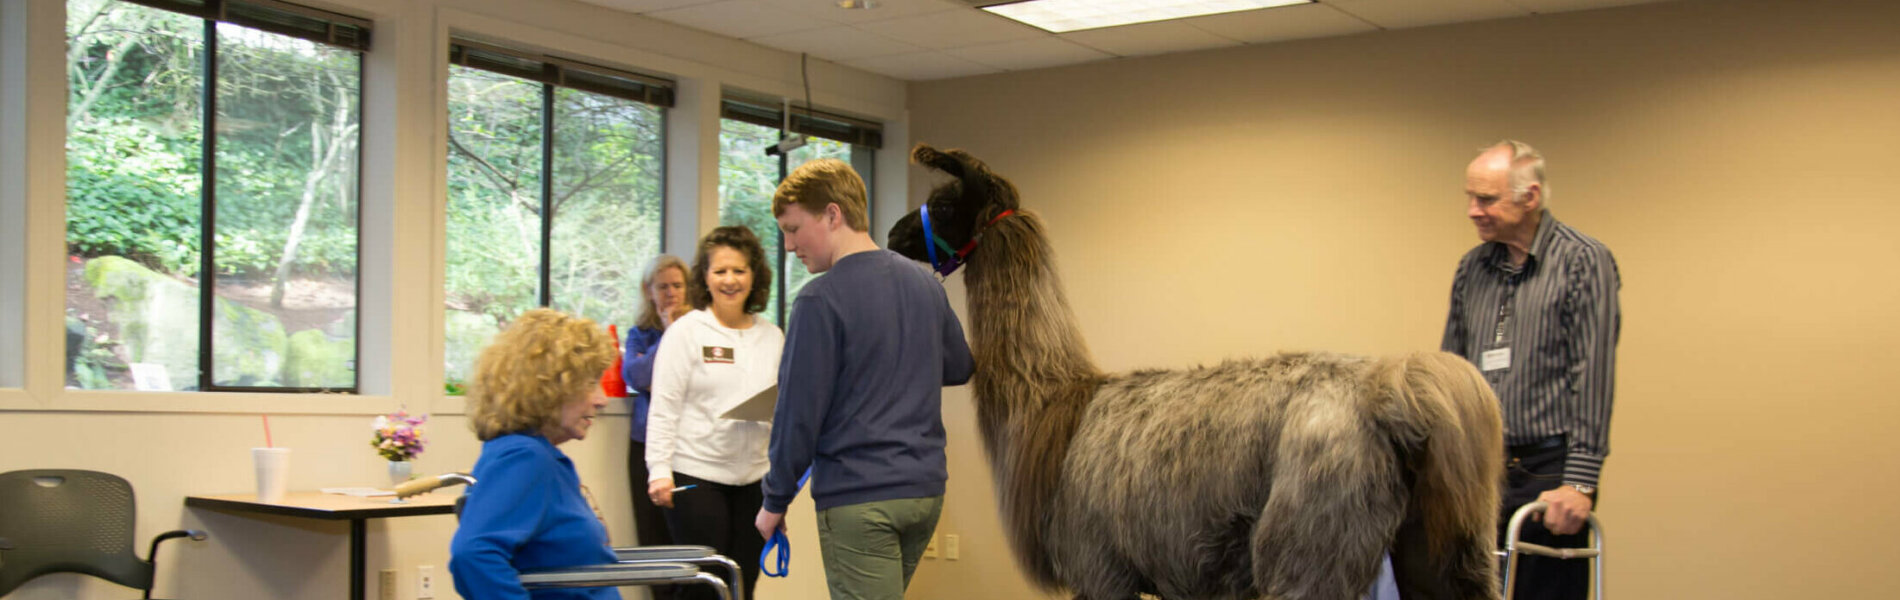 A therapy llama team undergoes a team evaluation, gauging how they respond to interacting with people using mobility devices. Photo by Dani Weiss.